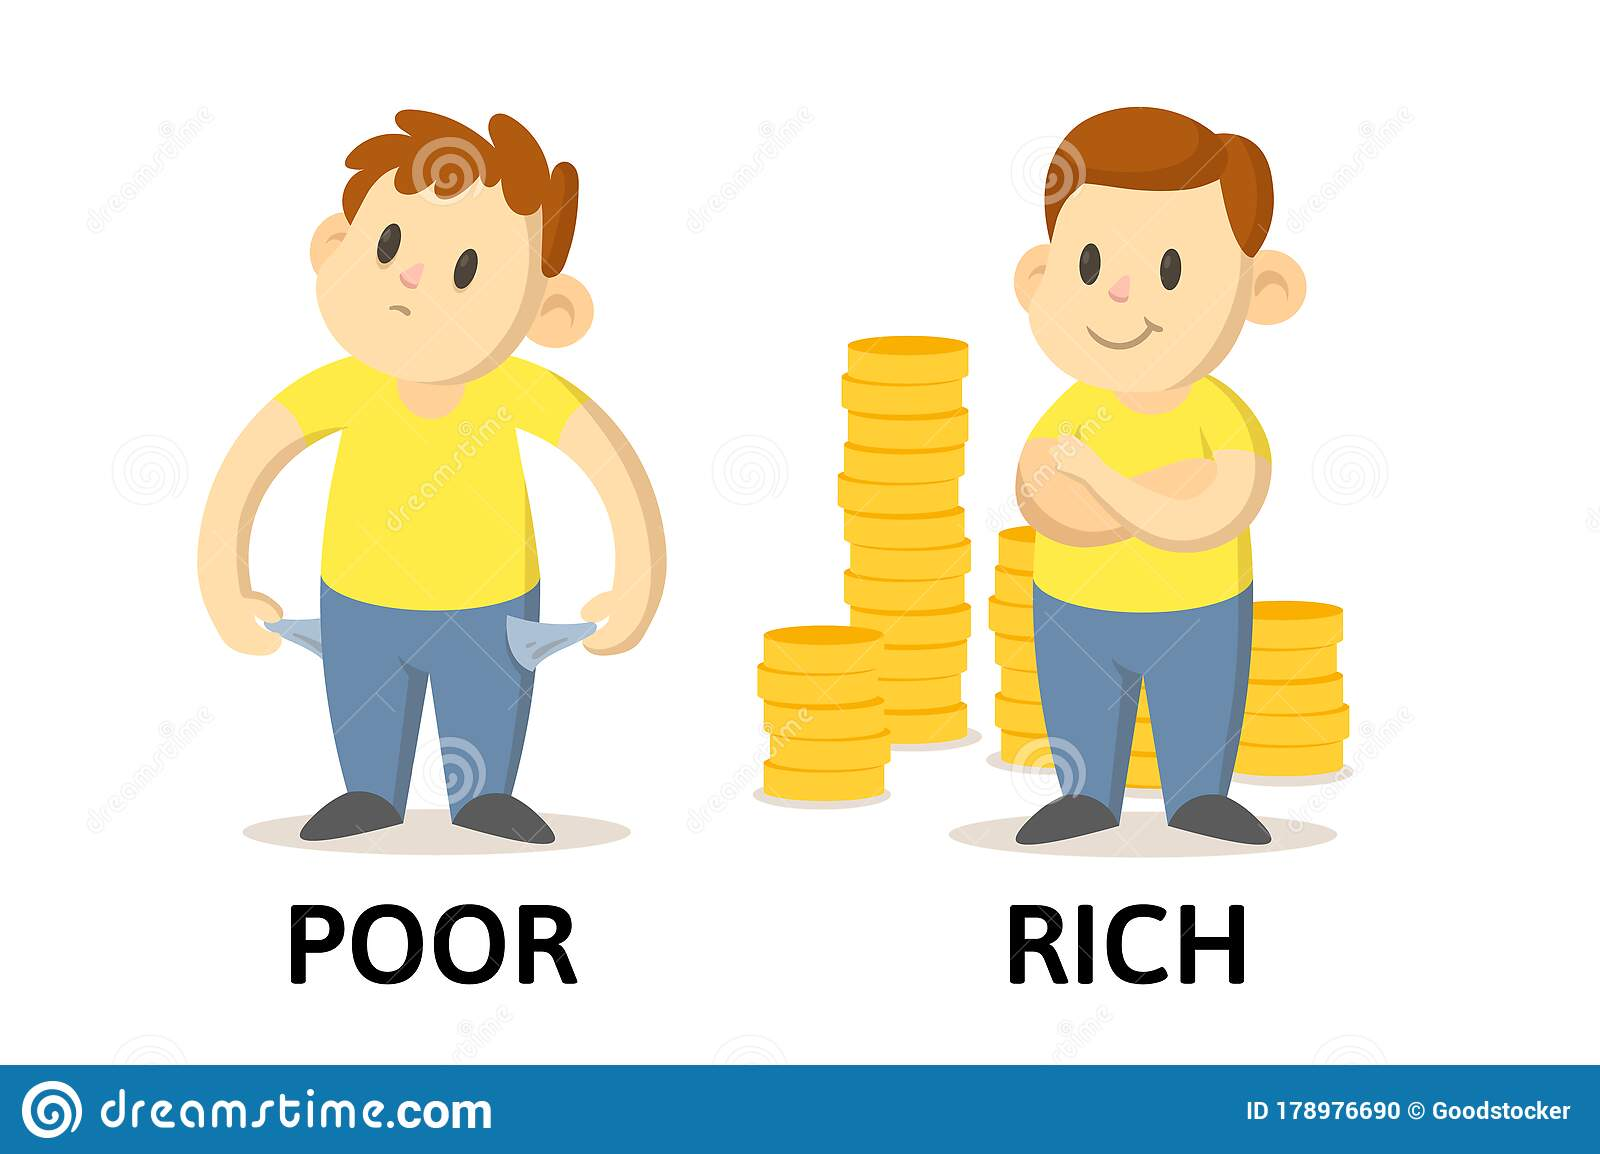 Rich clipart png images   PNGWing